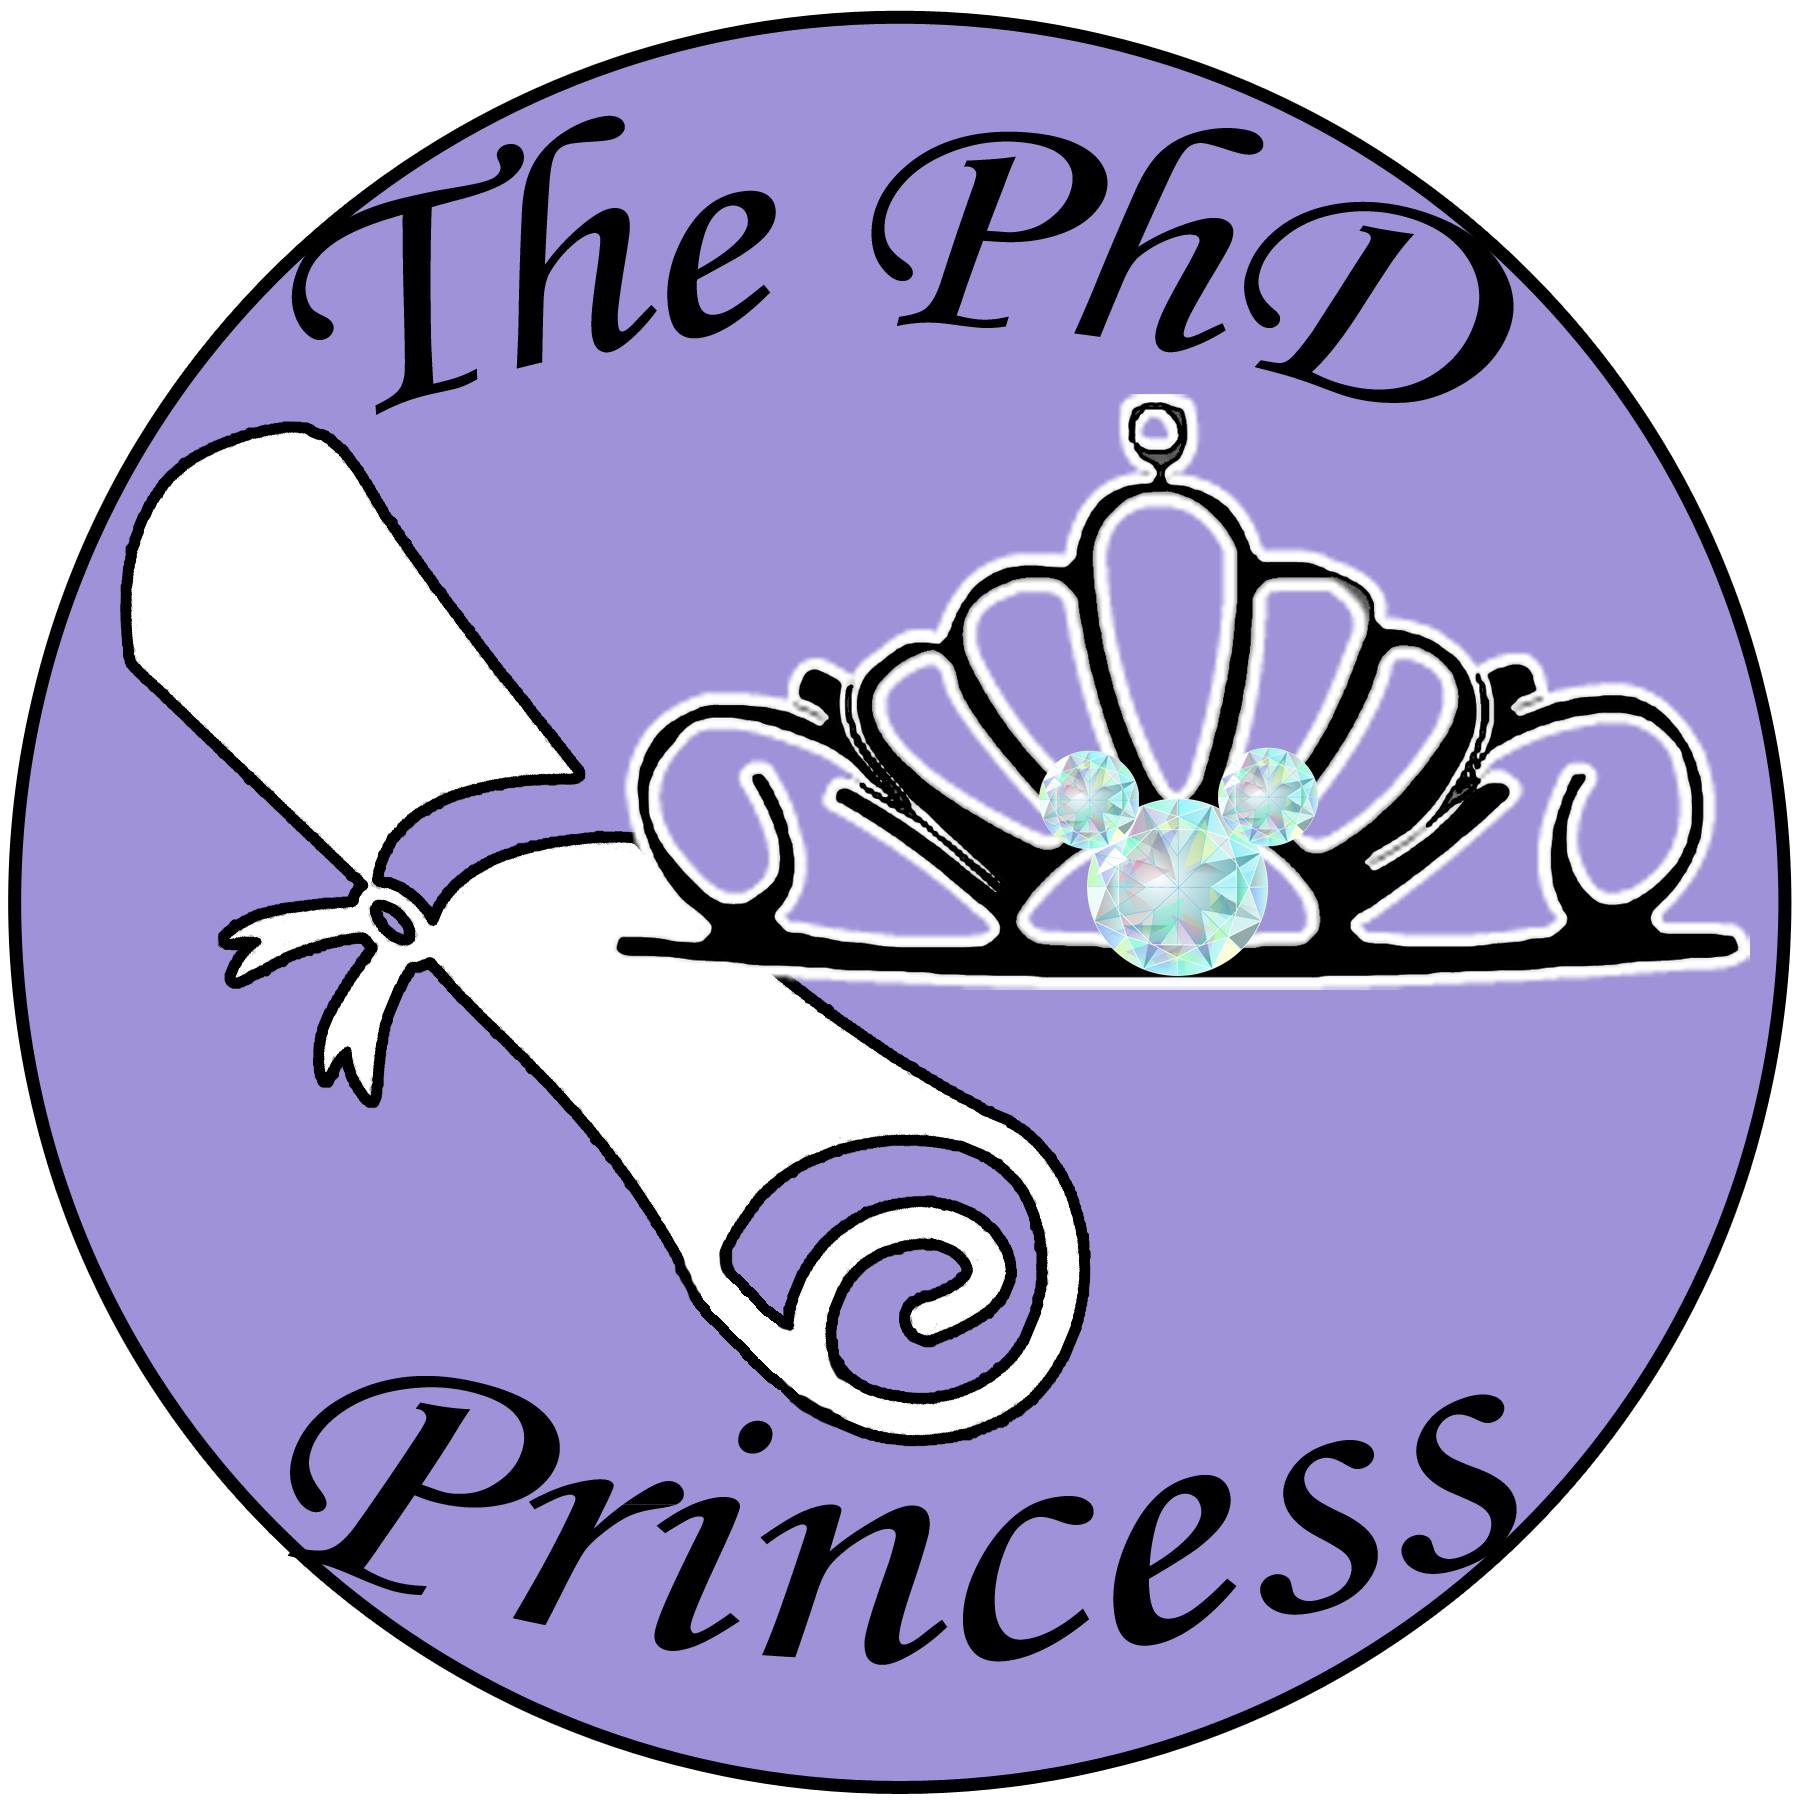 The PhD Princess